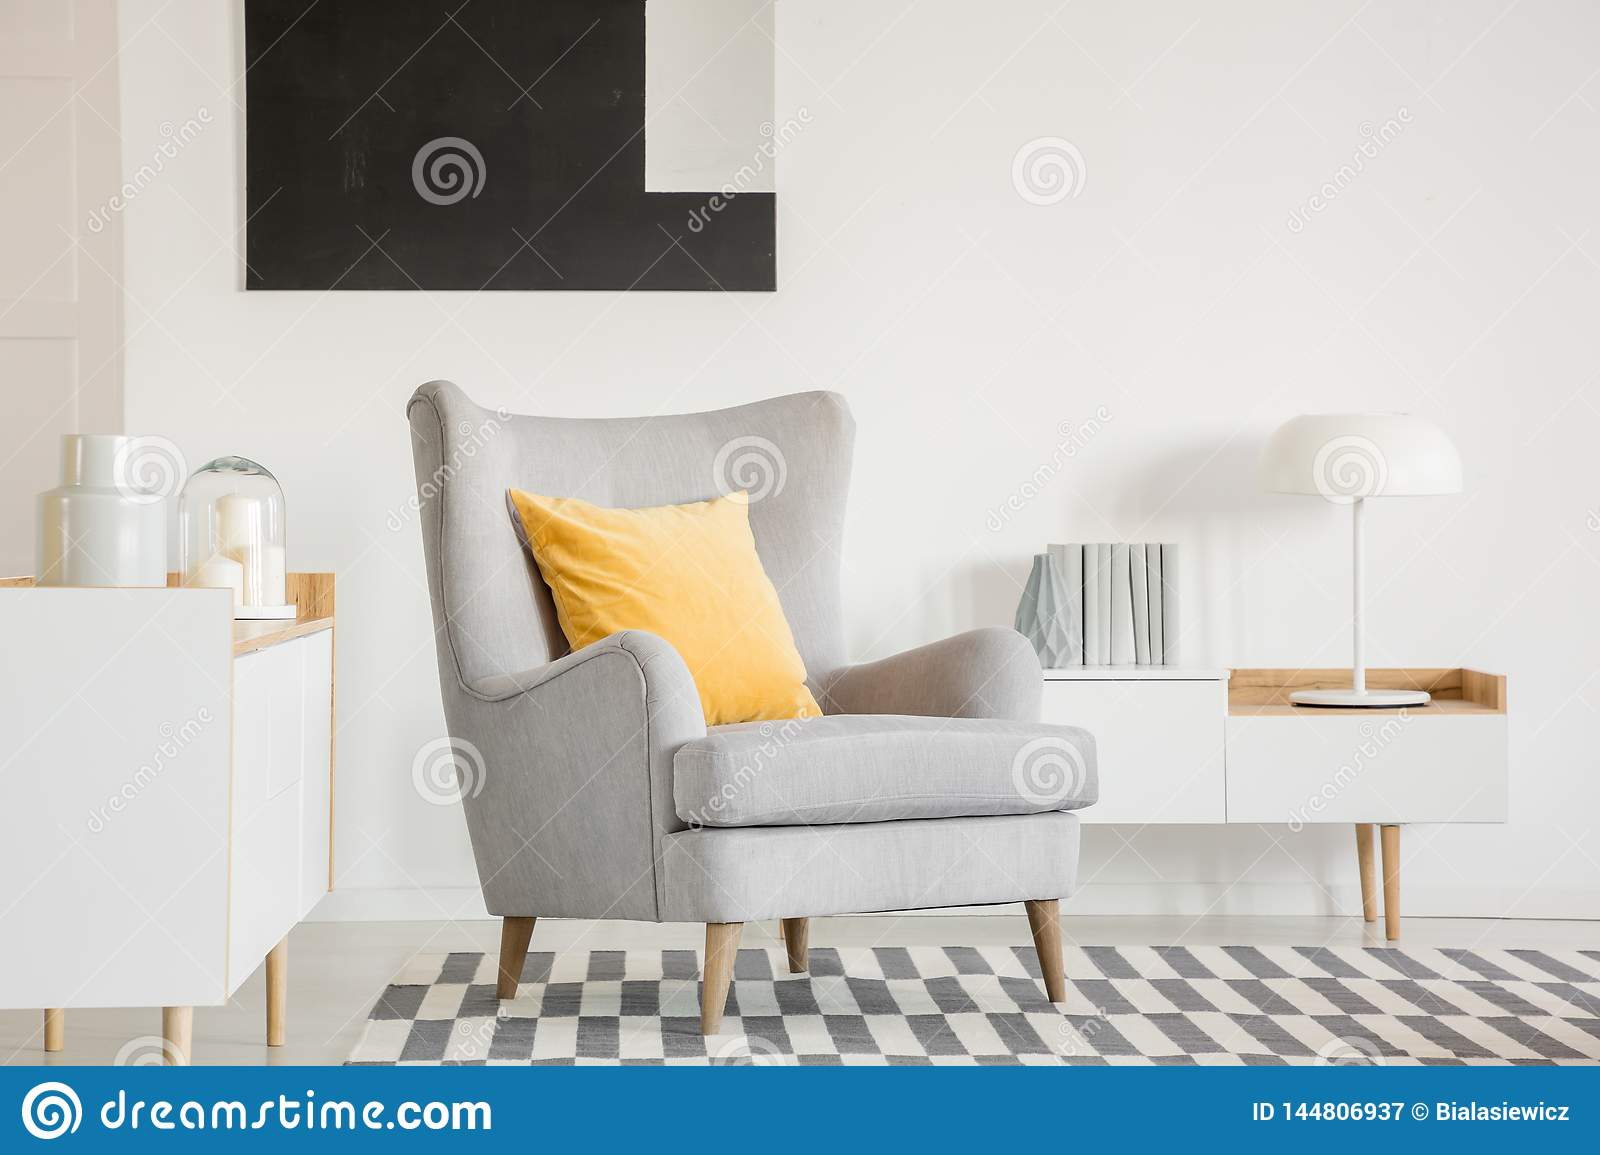 Pillow On Grey Armchair In Fashionable Living Room Interior ...